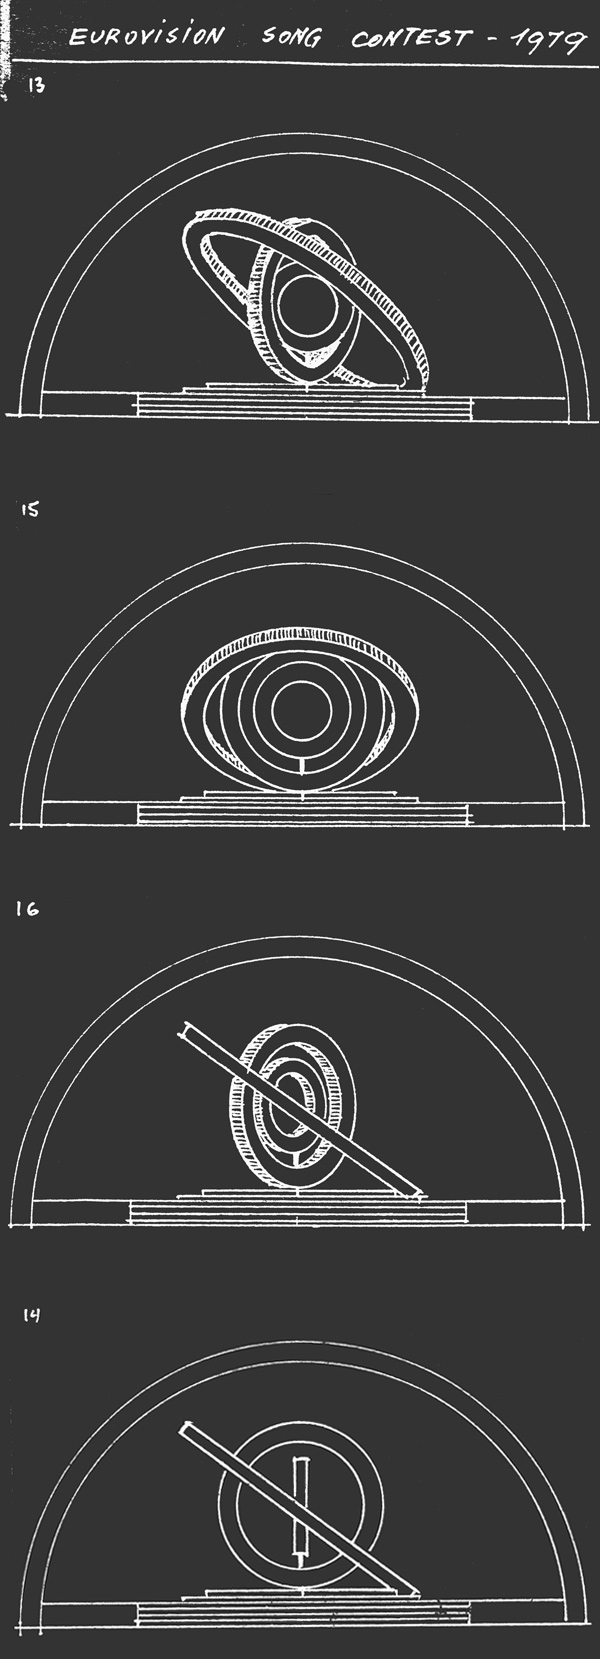 Drawings of the rings in various positions